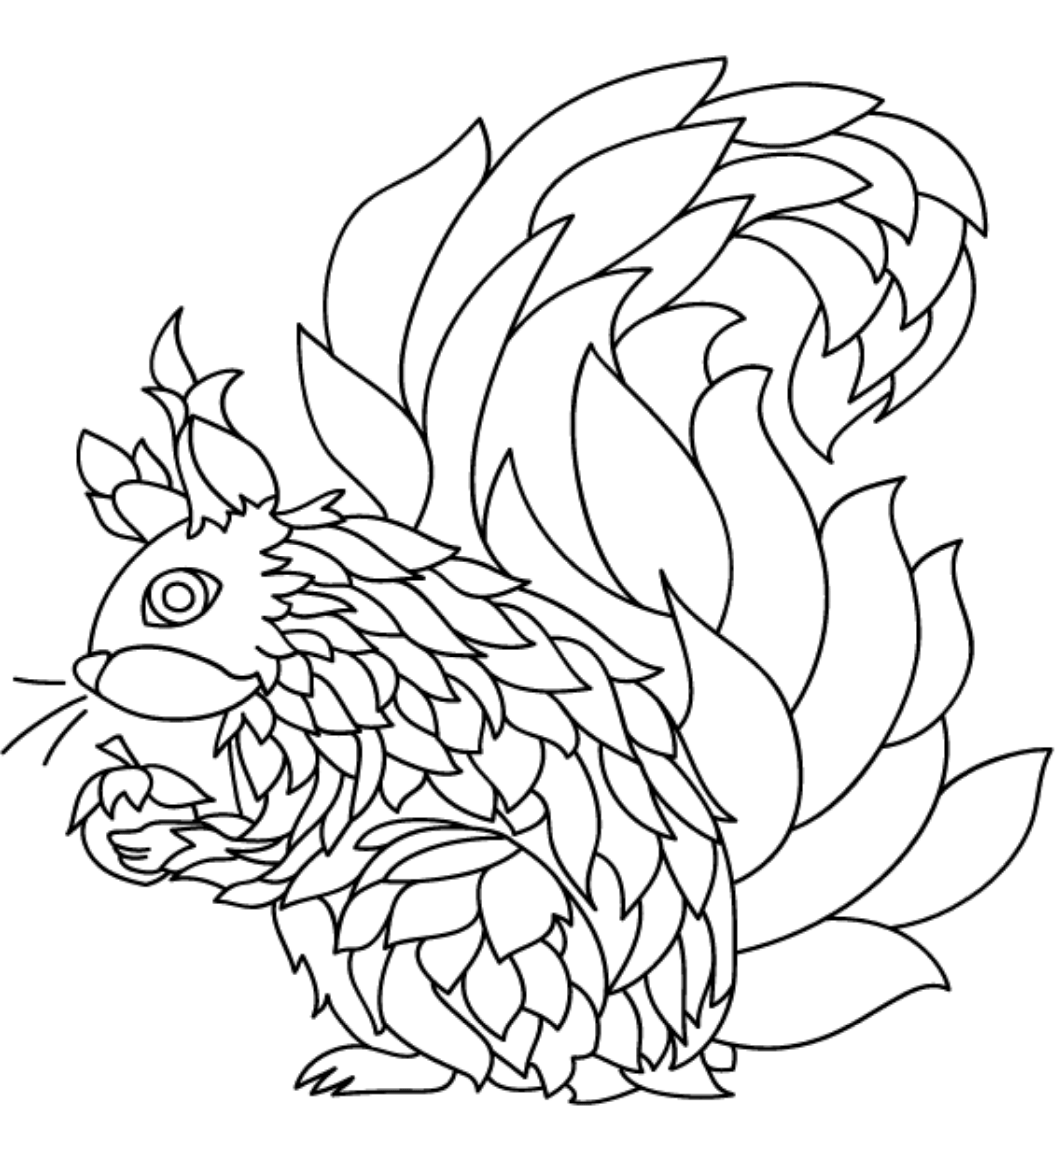 coloring pages of squirrels squirrel coloring pages coloring pages squirrels of